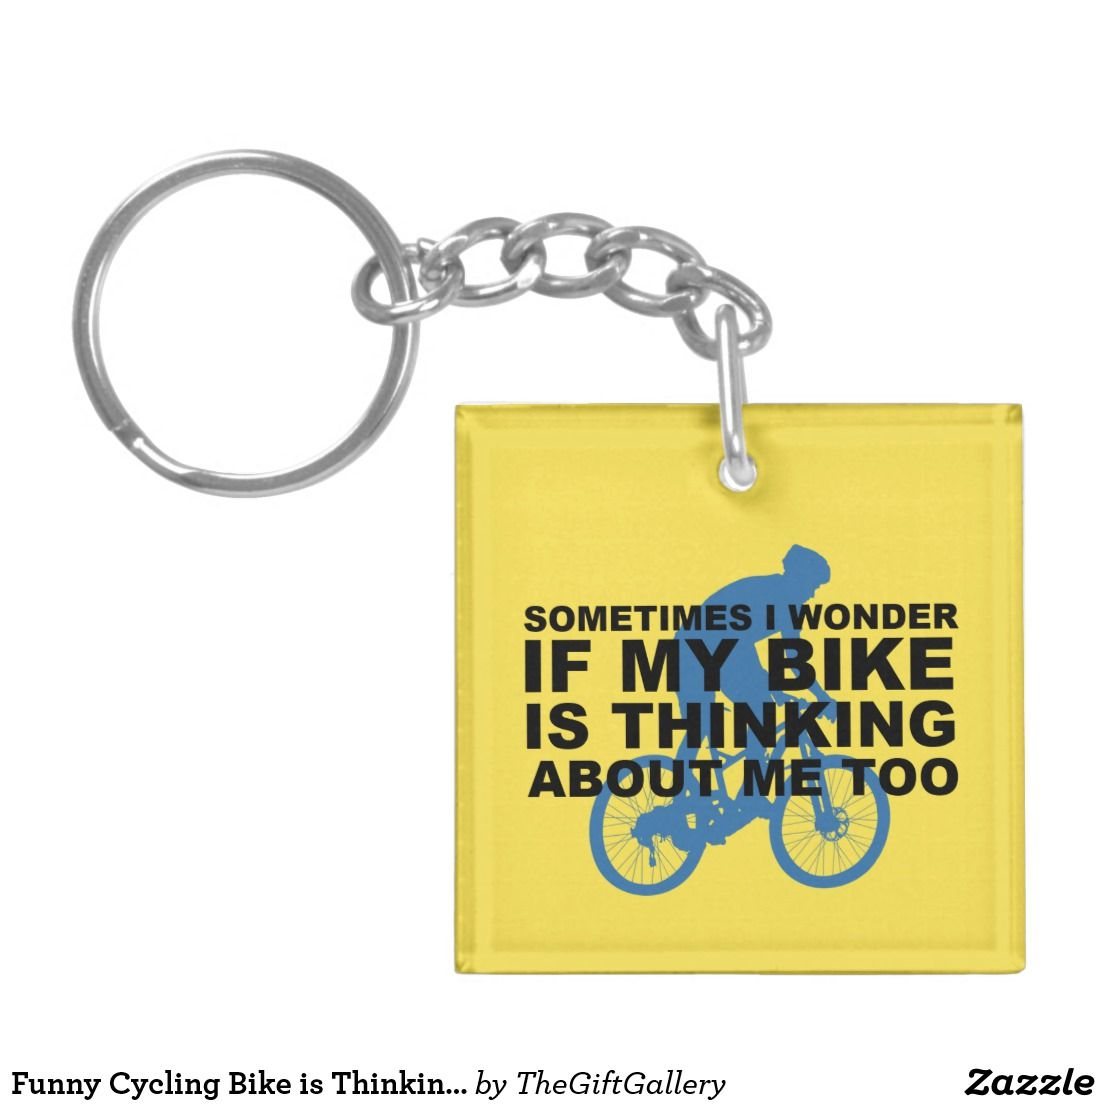 Funny Cycling Bike Is Thinking About Me Too Blue Keychain Zazzle